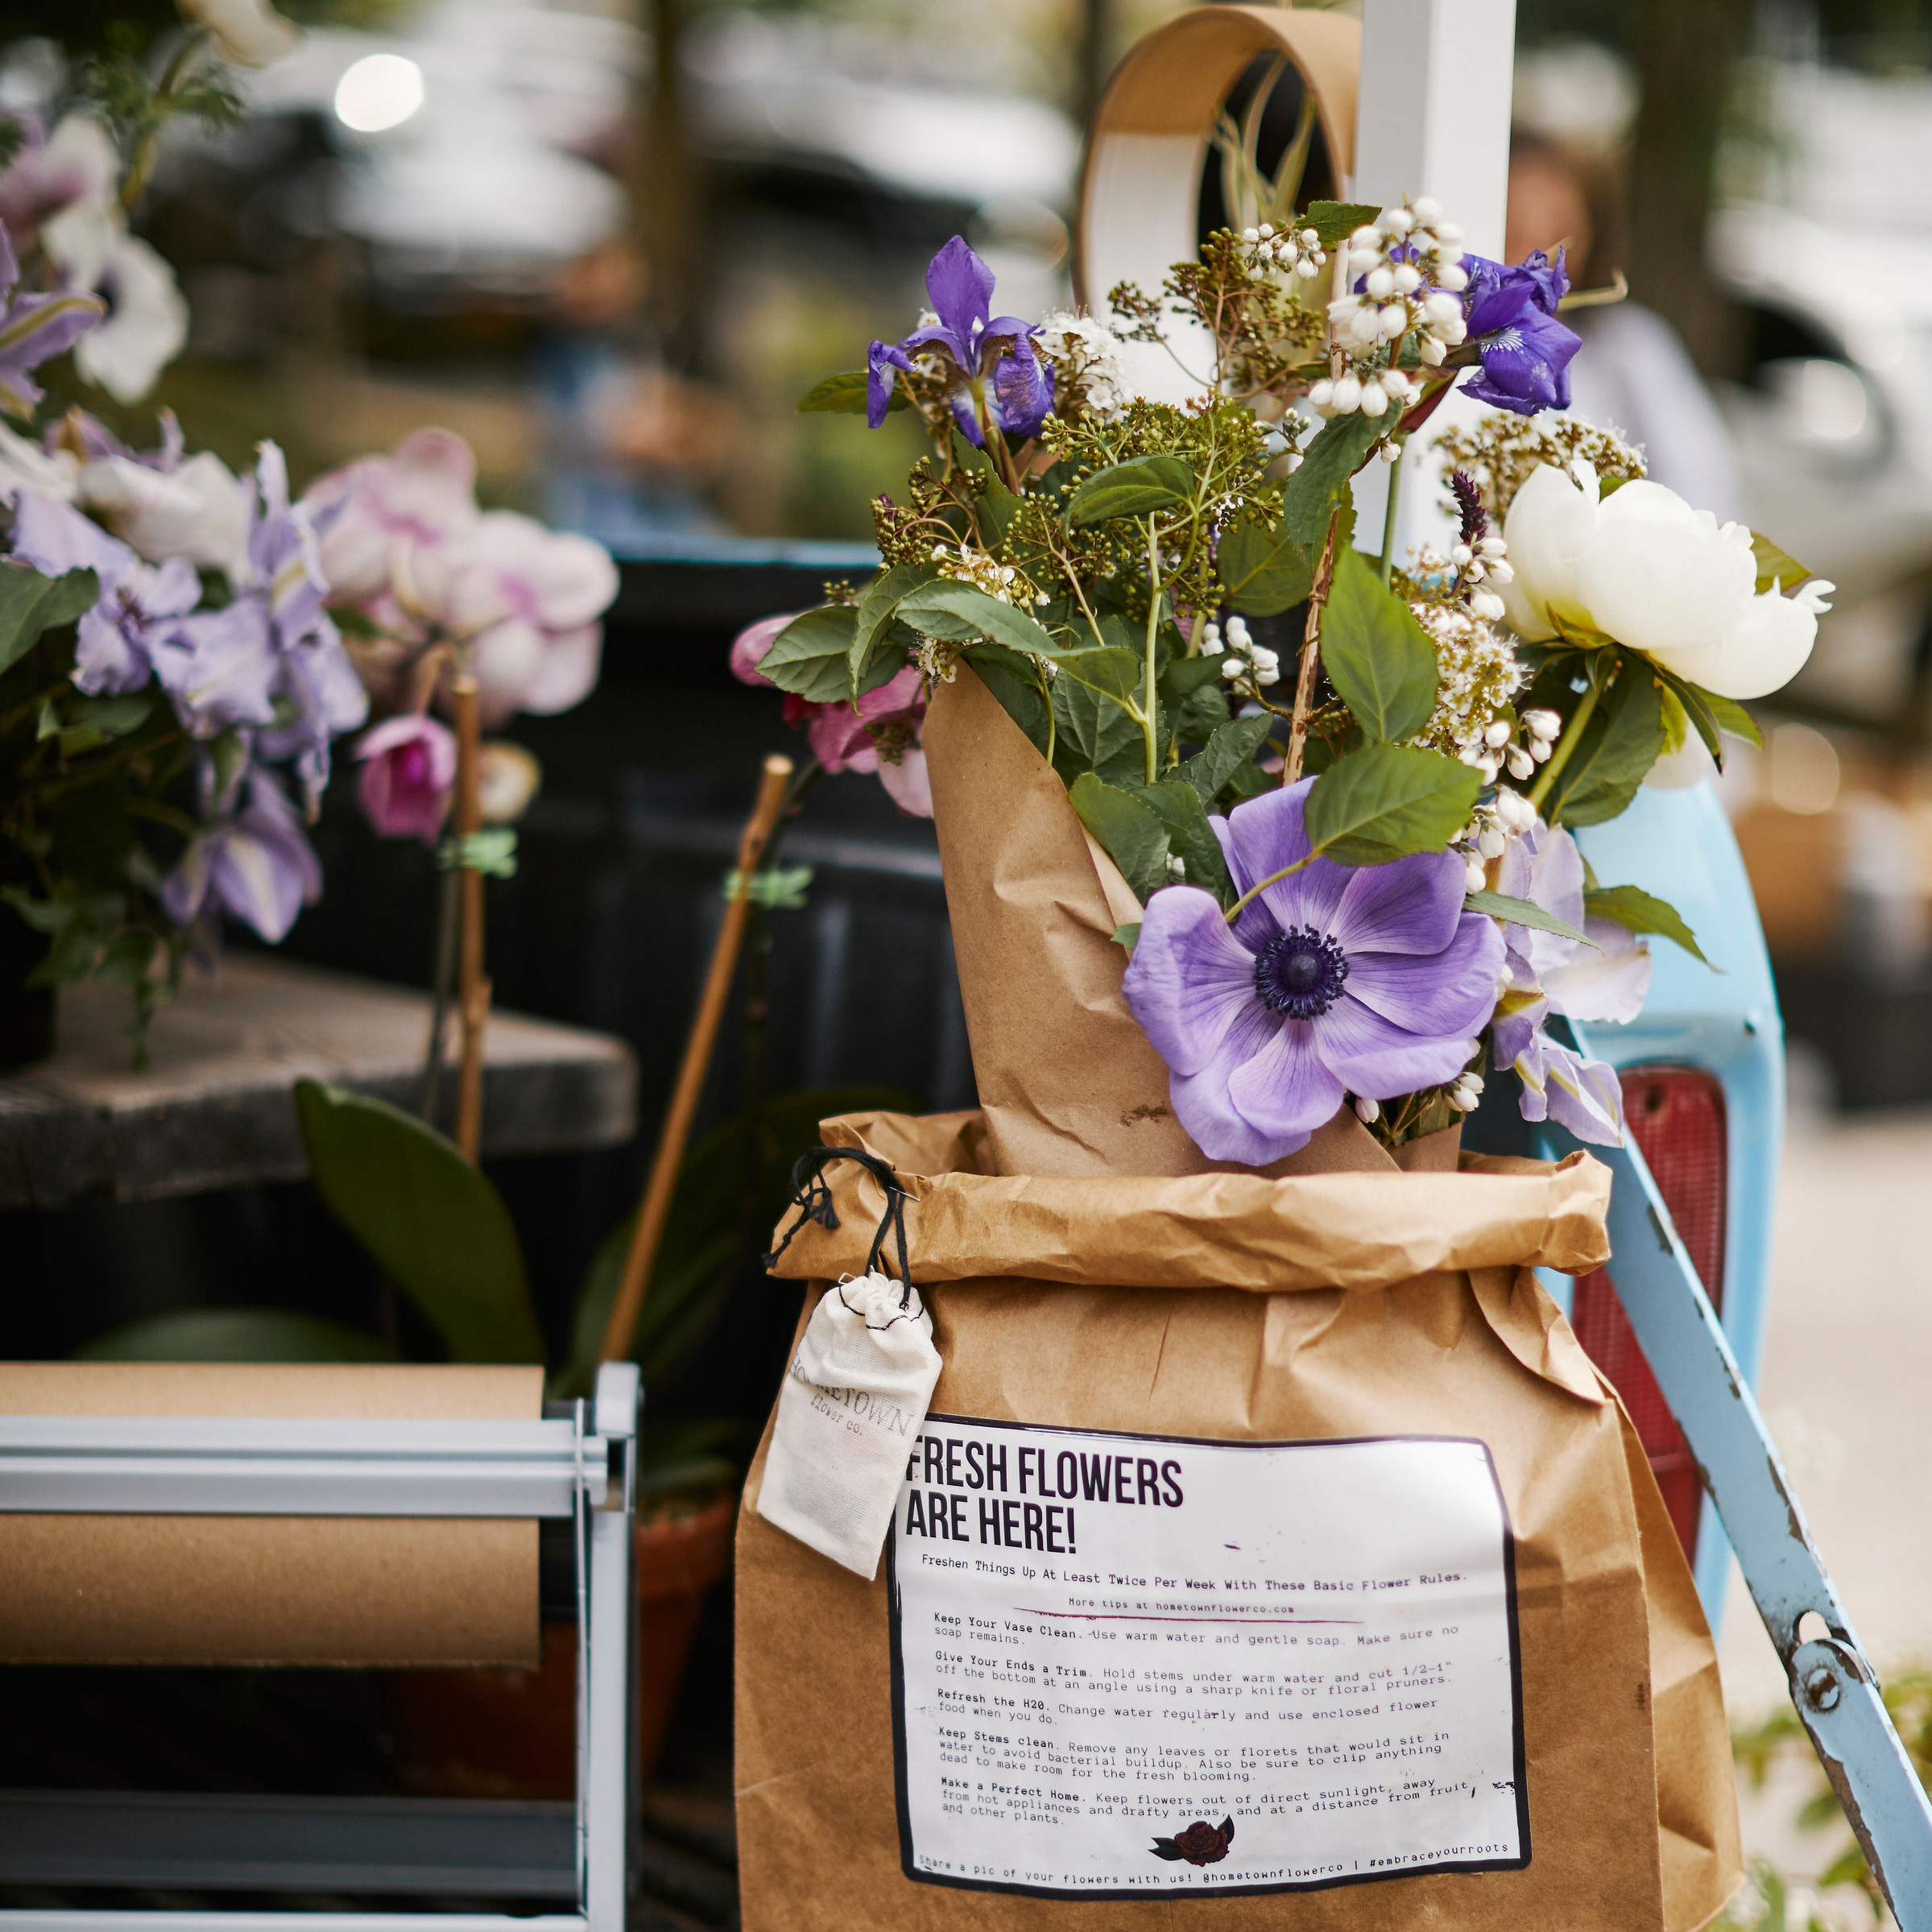 ONE MONTH OF WEEKLY DELIVERED FLOWERS -